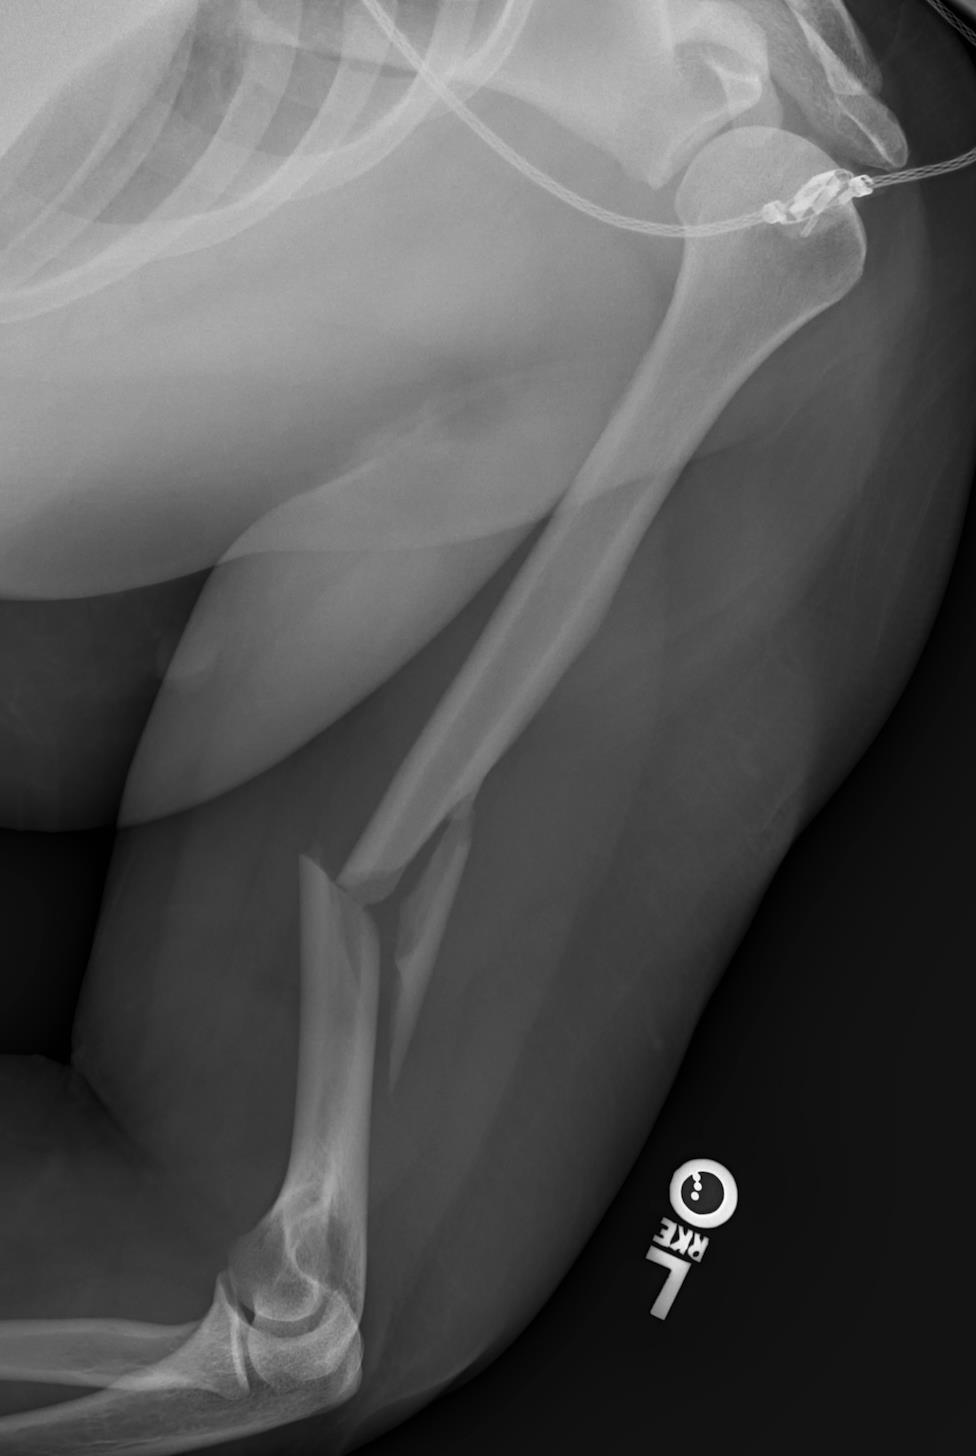 https://upload.orthobullets.com/topic/6066/images/humerus_fracture.jpg